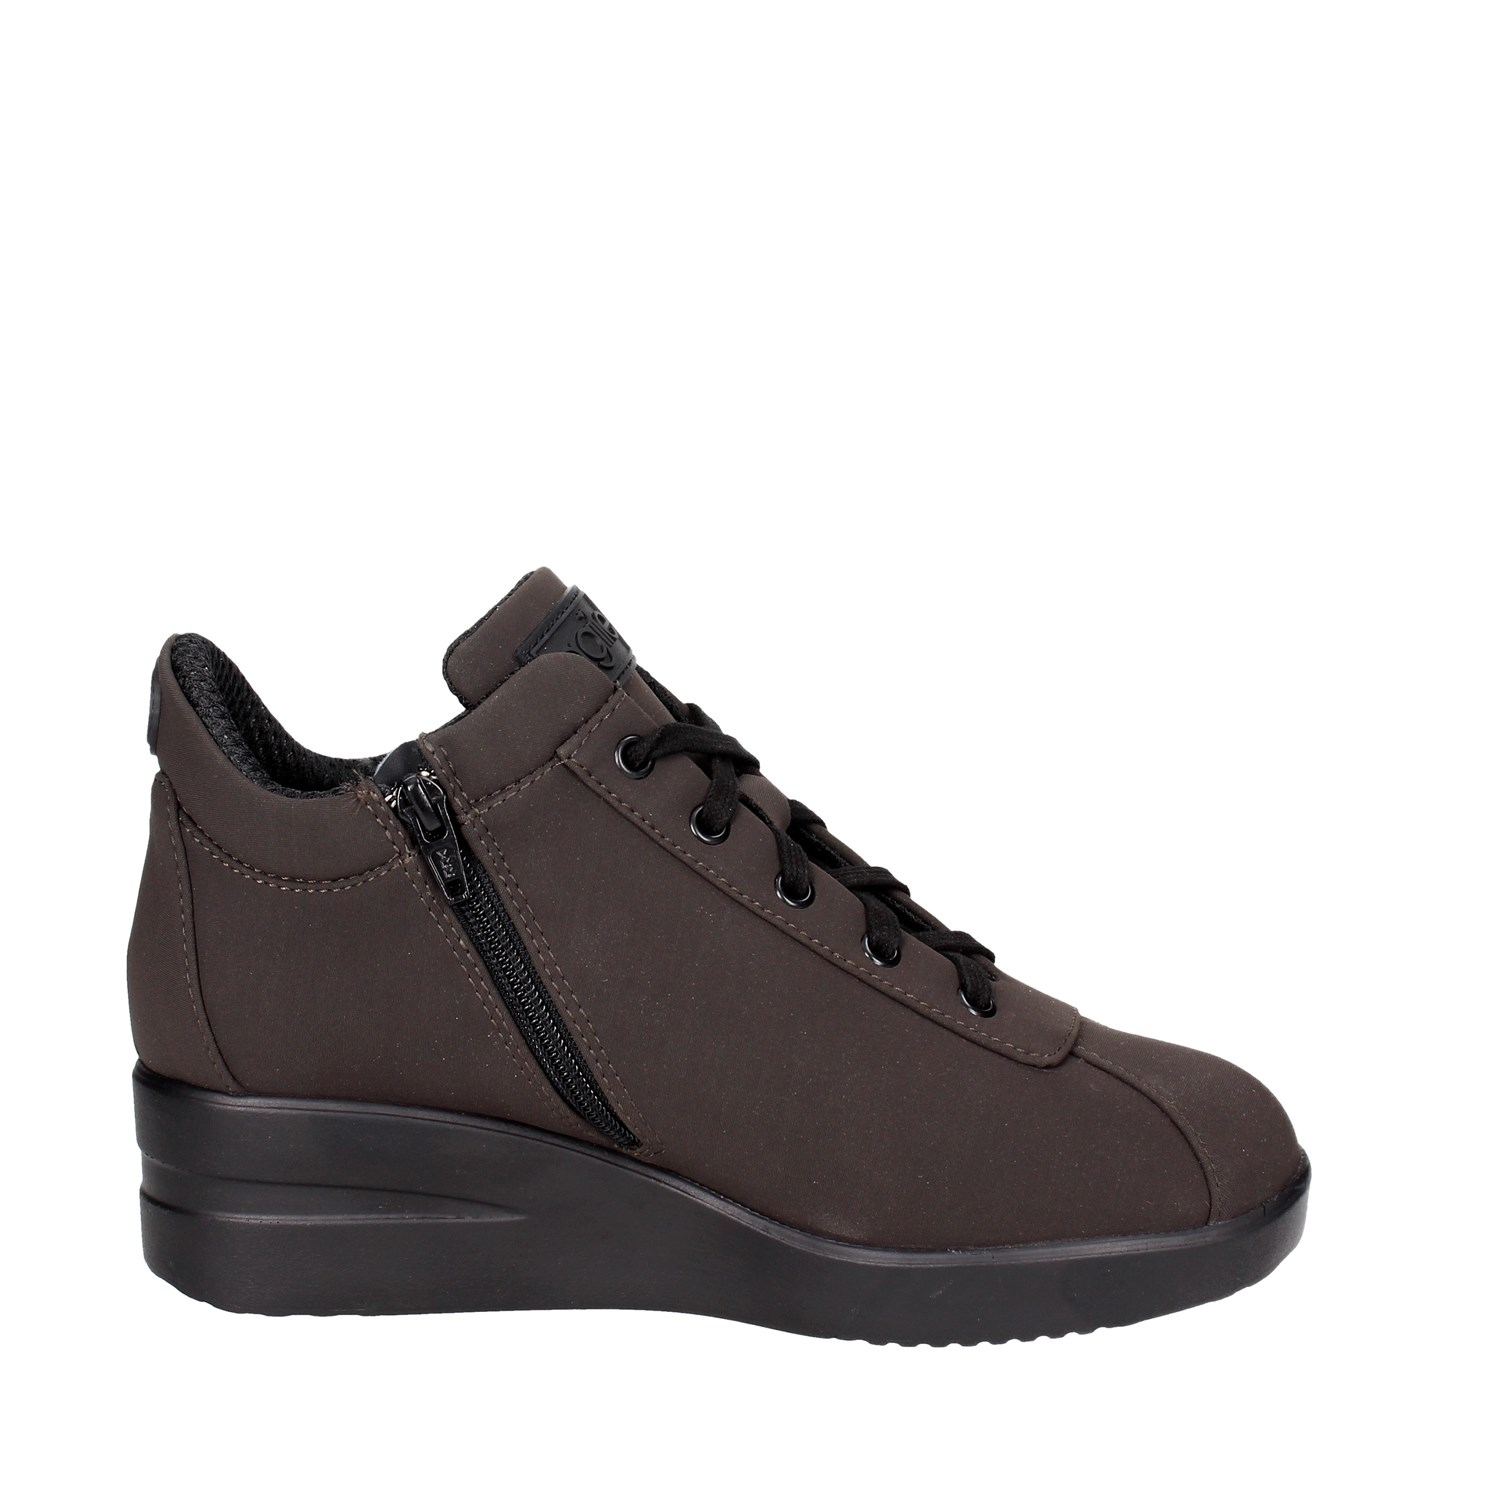 Rucoline Bassa Sneakers 226 Autunno Donna Agile inverno 8 By Marrone 1Y7q1B5n